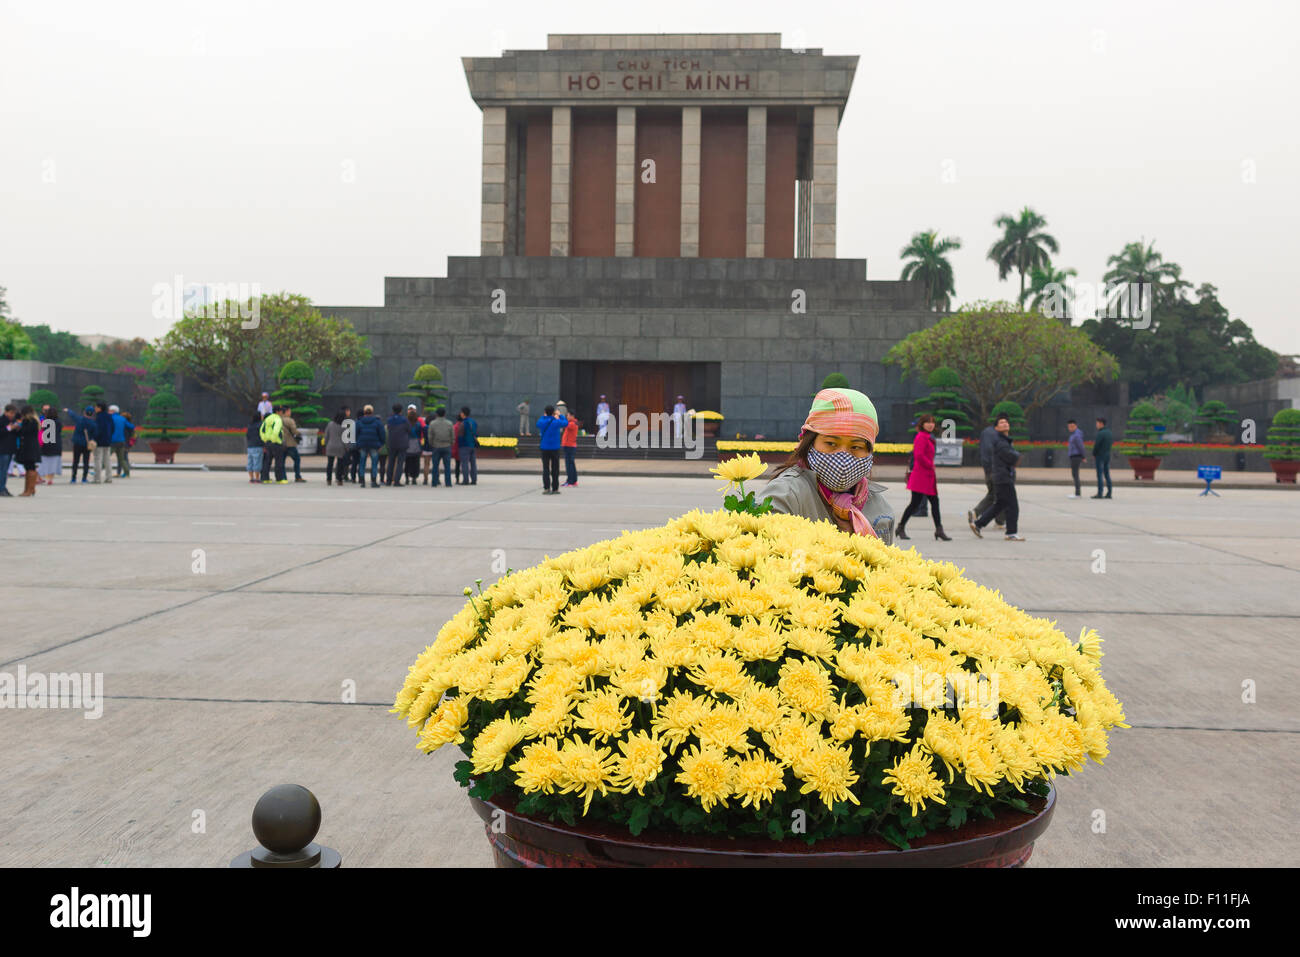 Ho Chi Minh mausoleum, a young Vietnamese worker plants the last flower in a large floral display at the site of - Stock Image